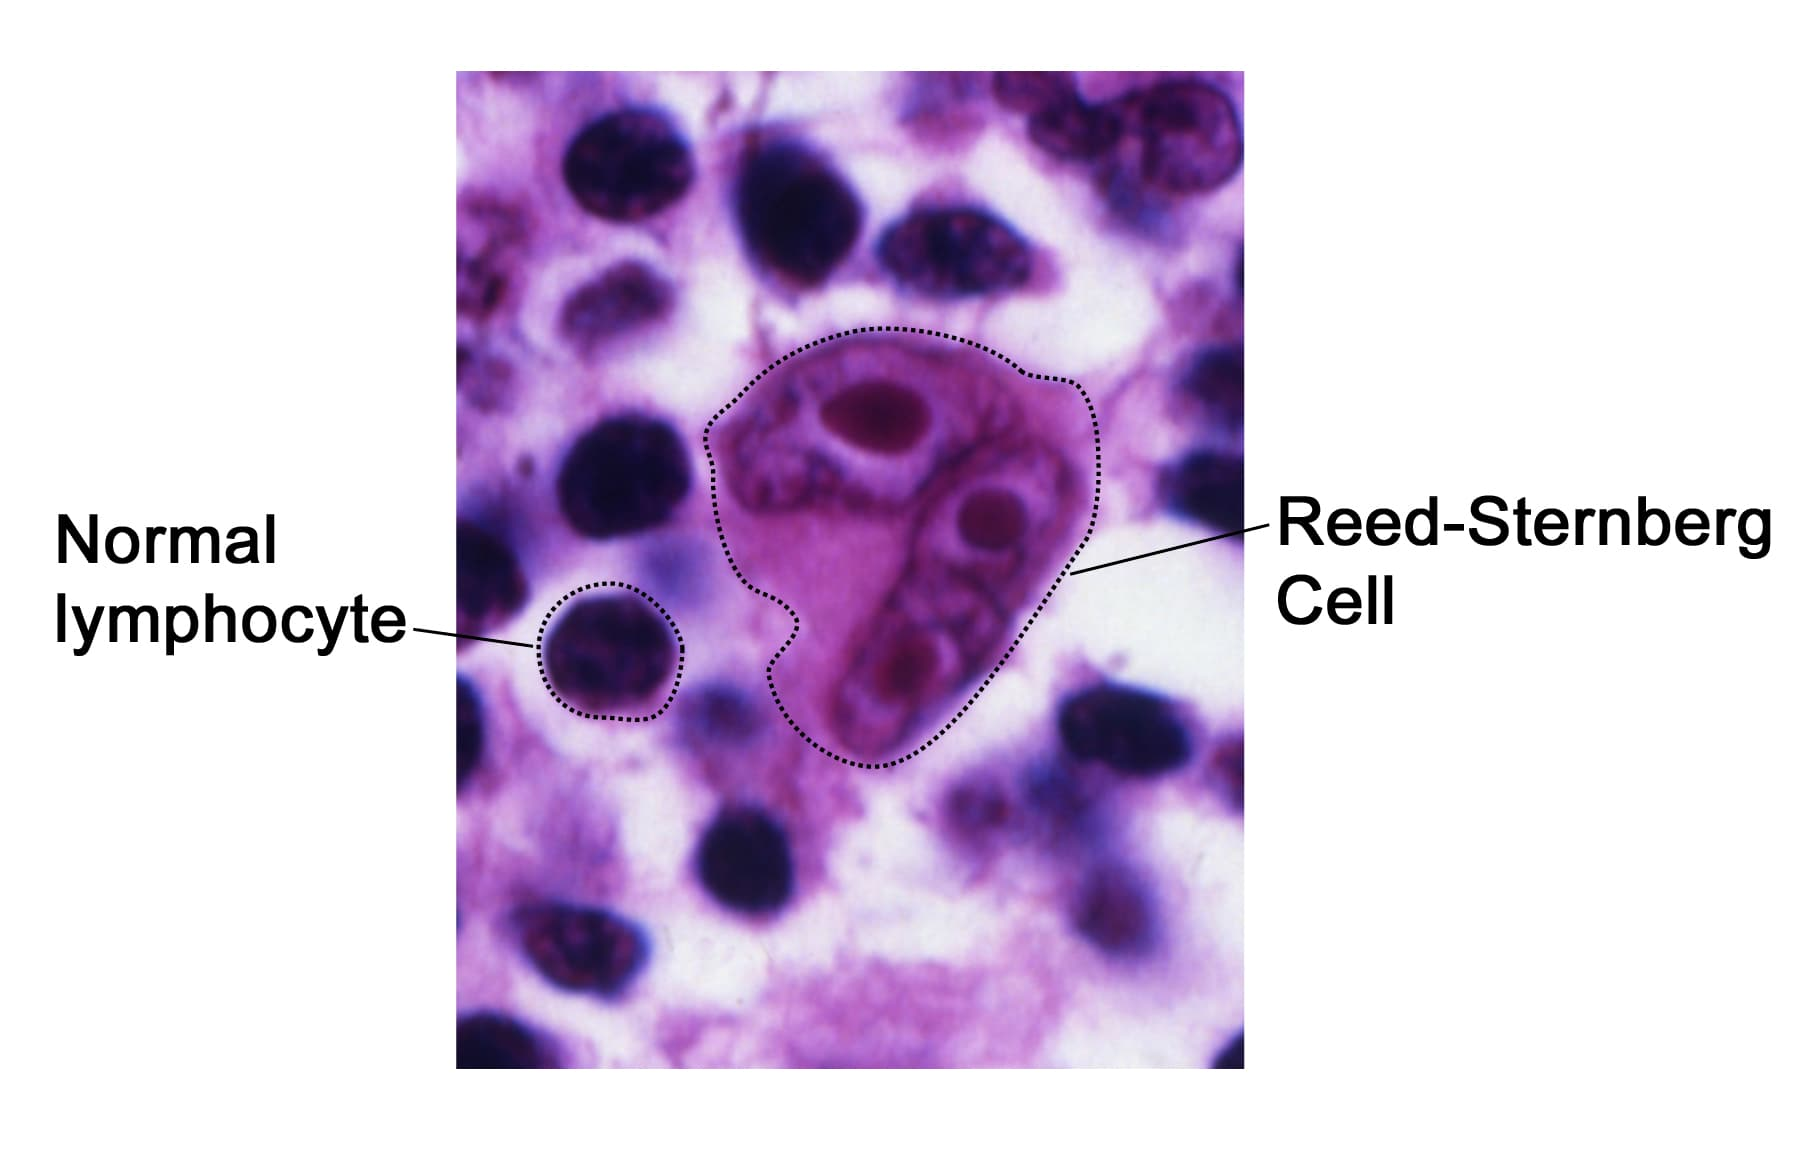 Reed Sternberg lymphocyte